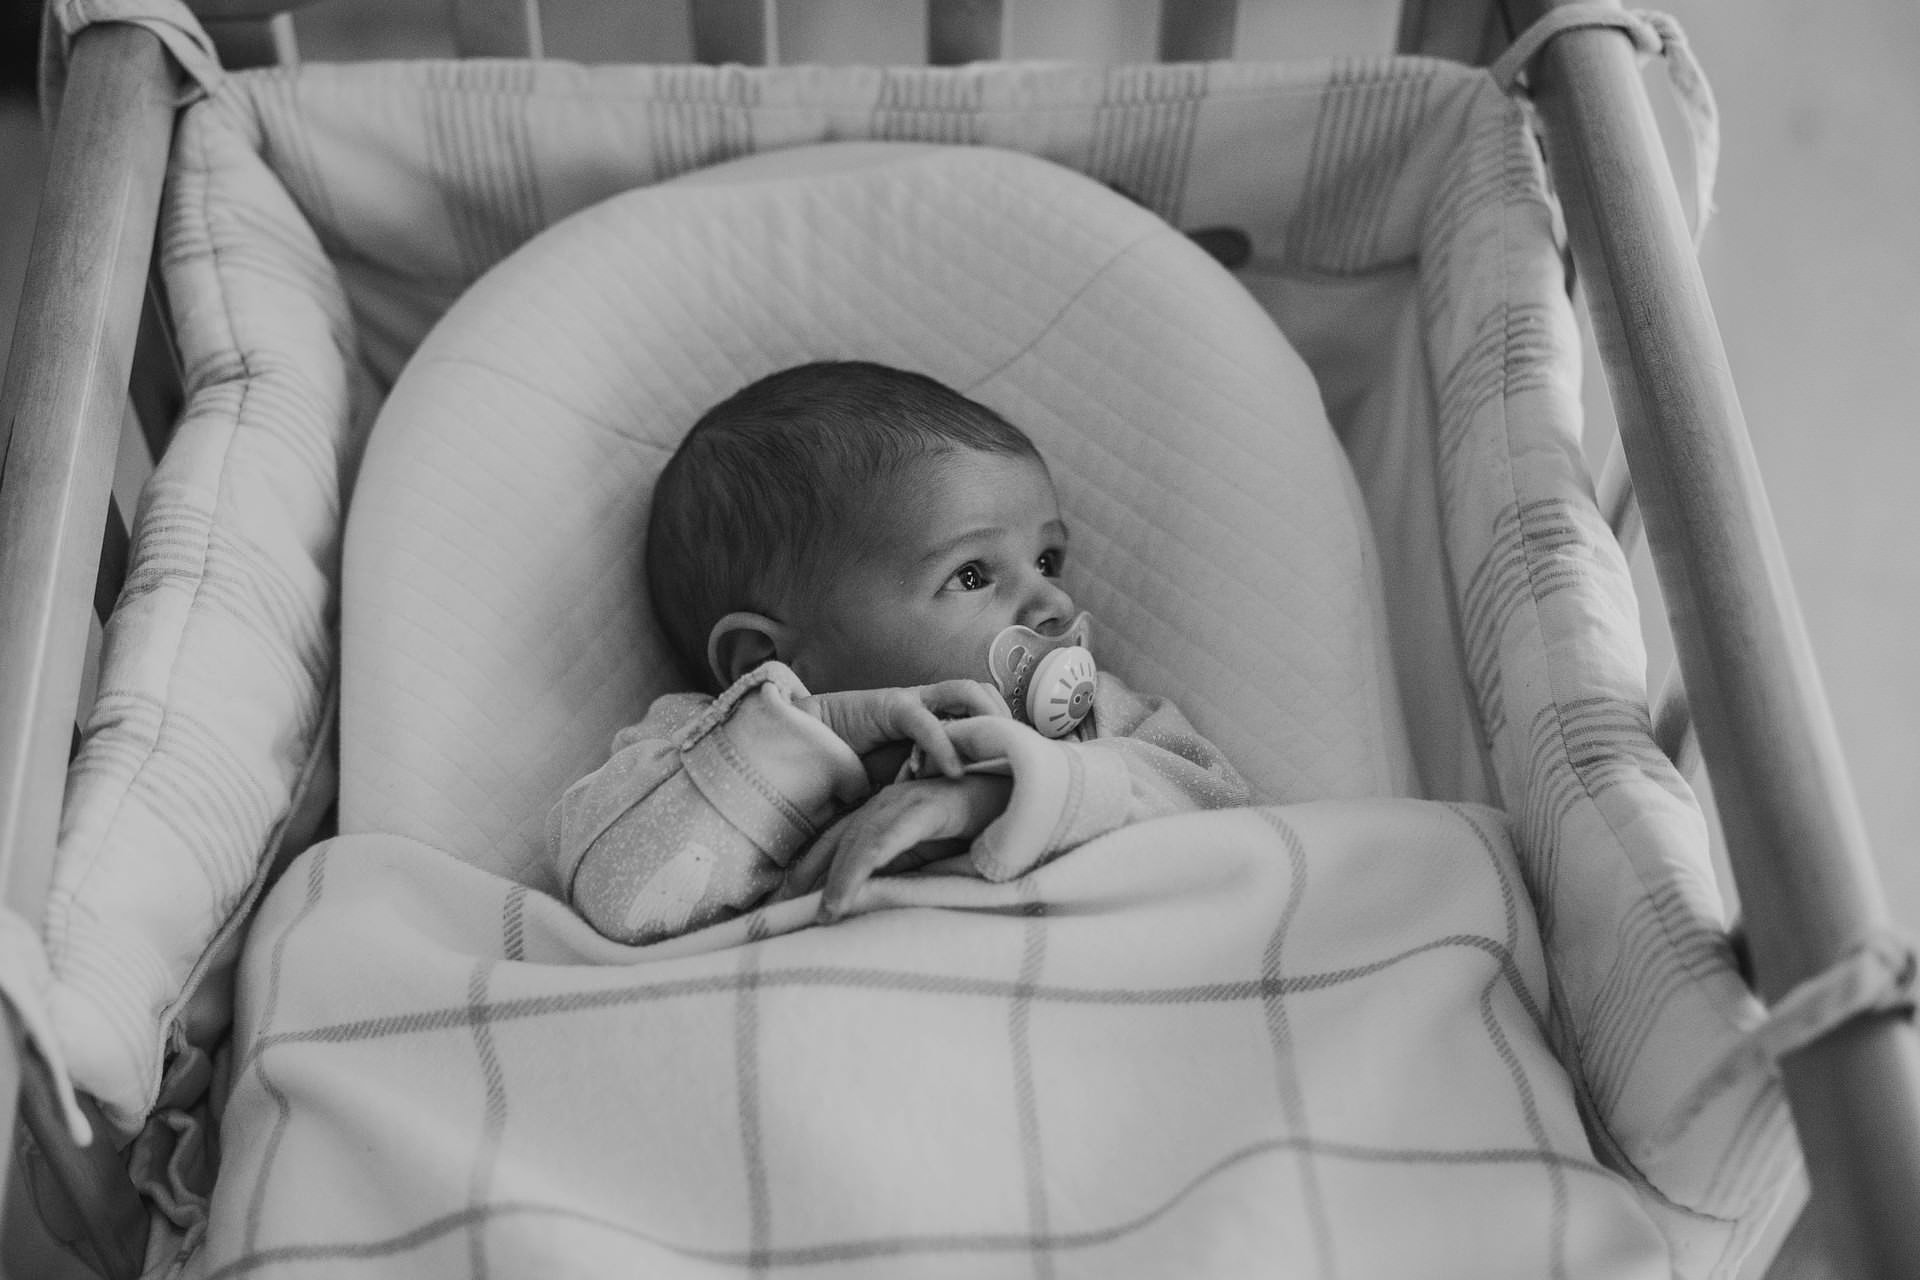 newborn baby in her cot with pacifier